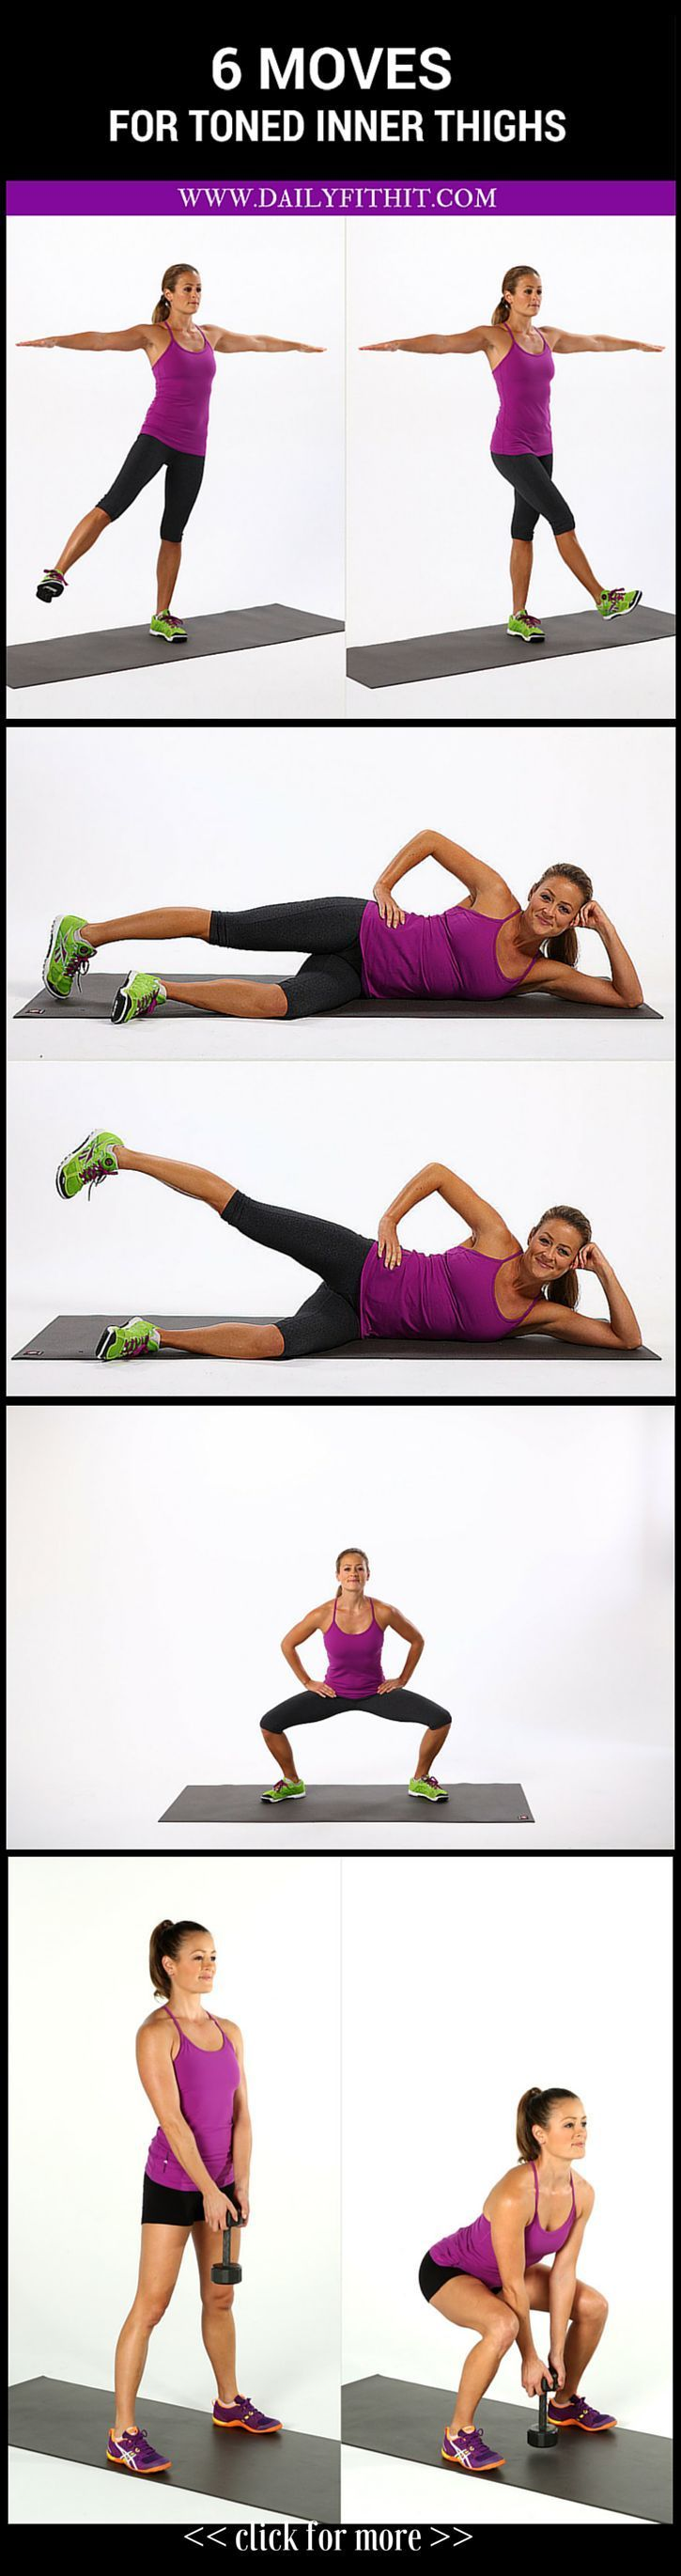 Moves for Terrifically Toned Inner Thighs Workout Fitness